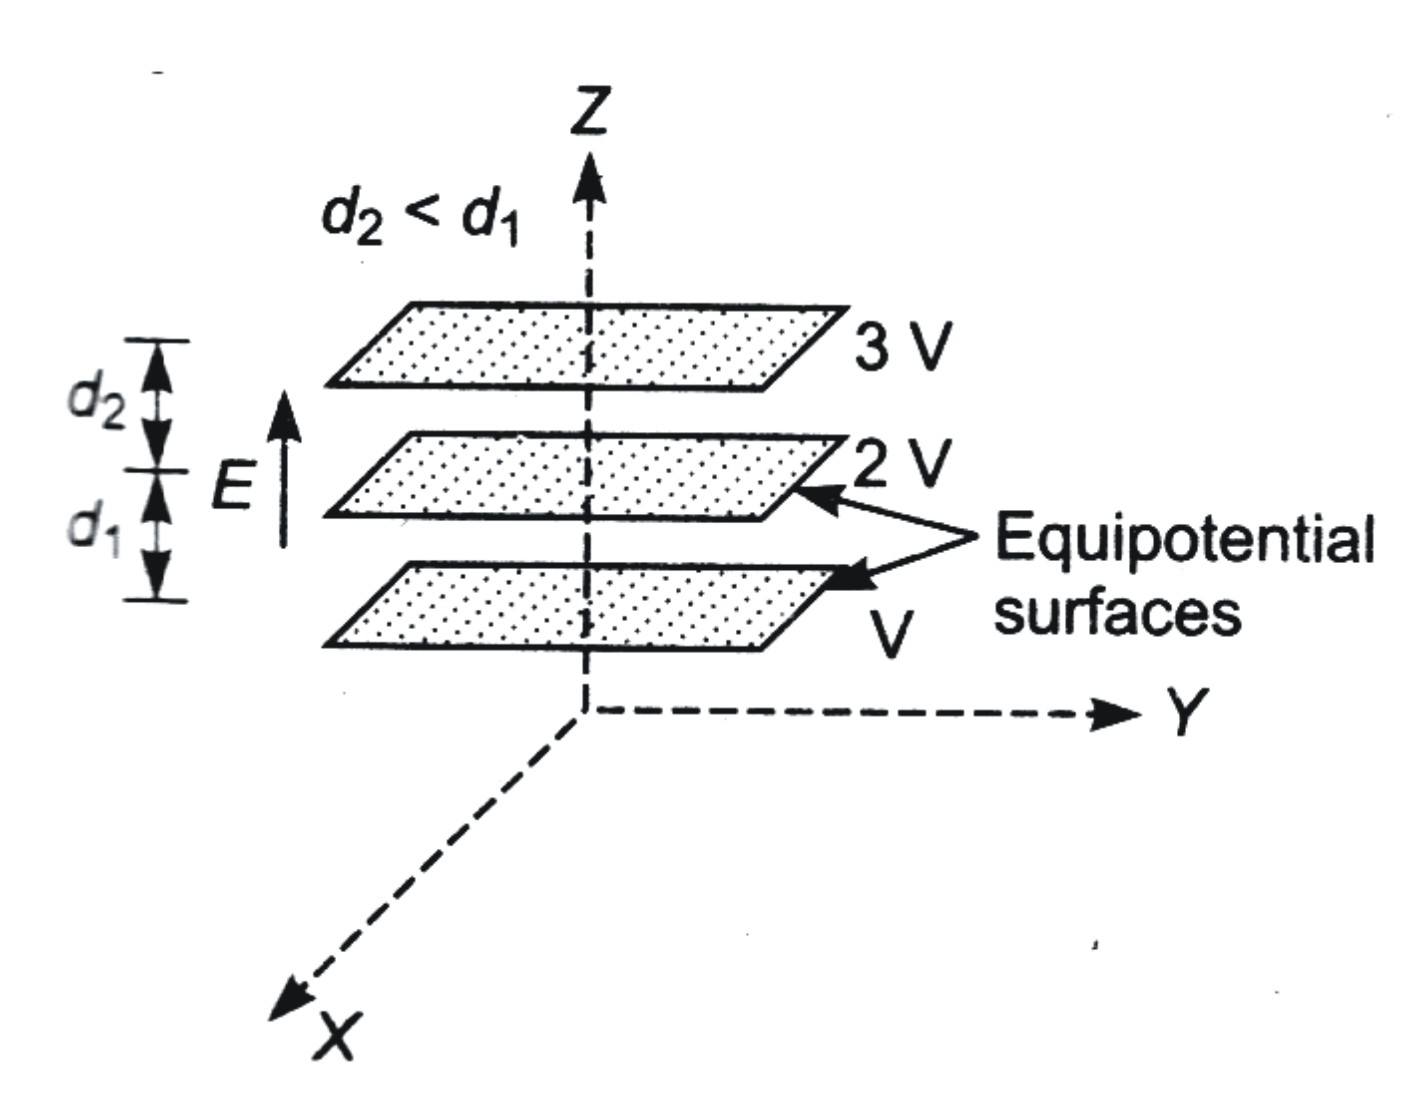 Electrostatic Potential and Capacitance : Previous Year's